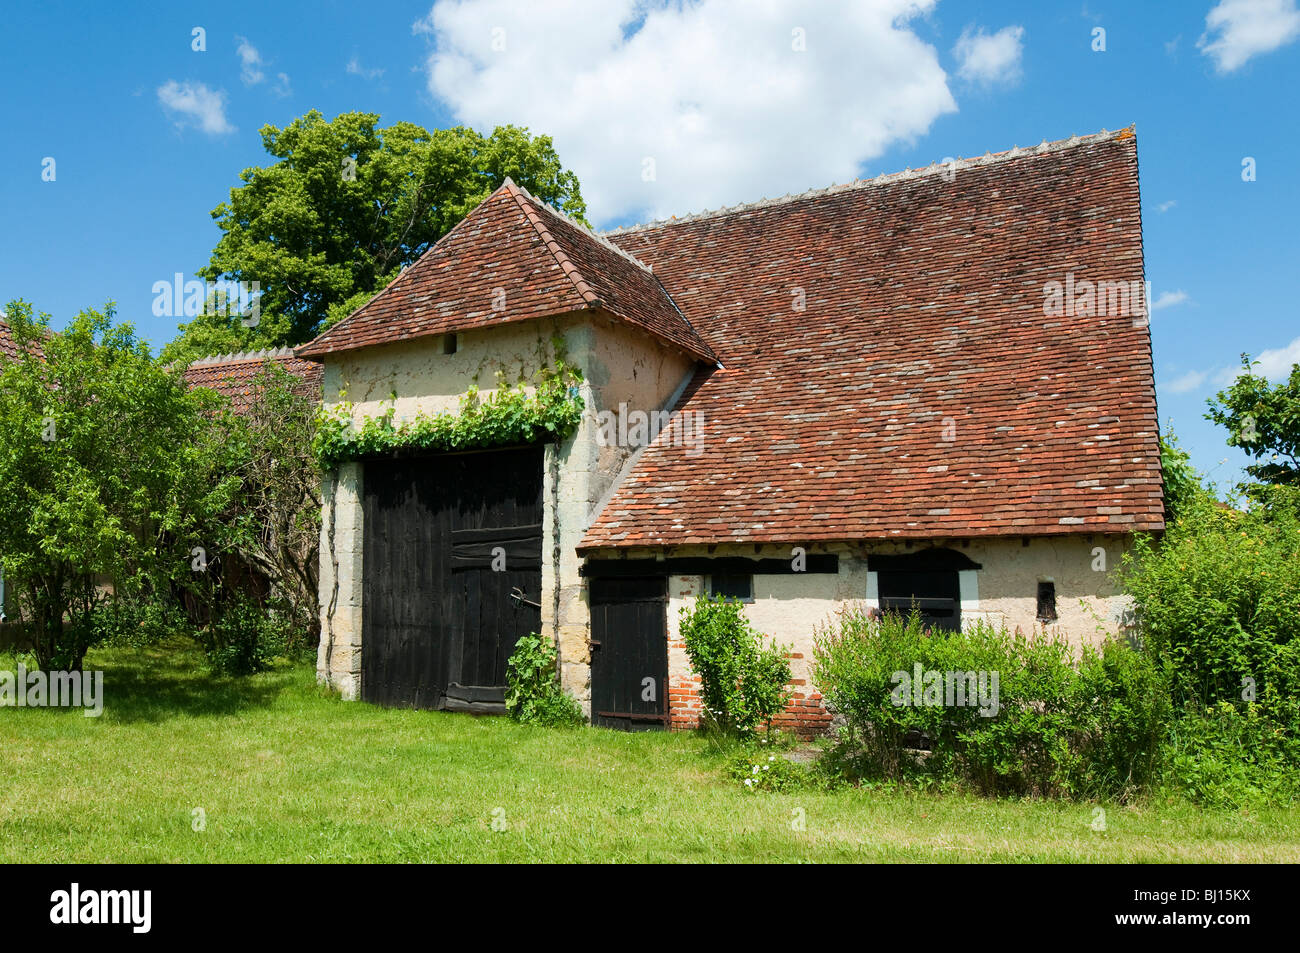 Traditional 16/17th century barn - Indre-et-Loire, France. - Stock Image